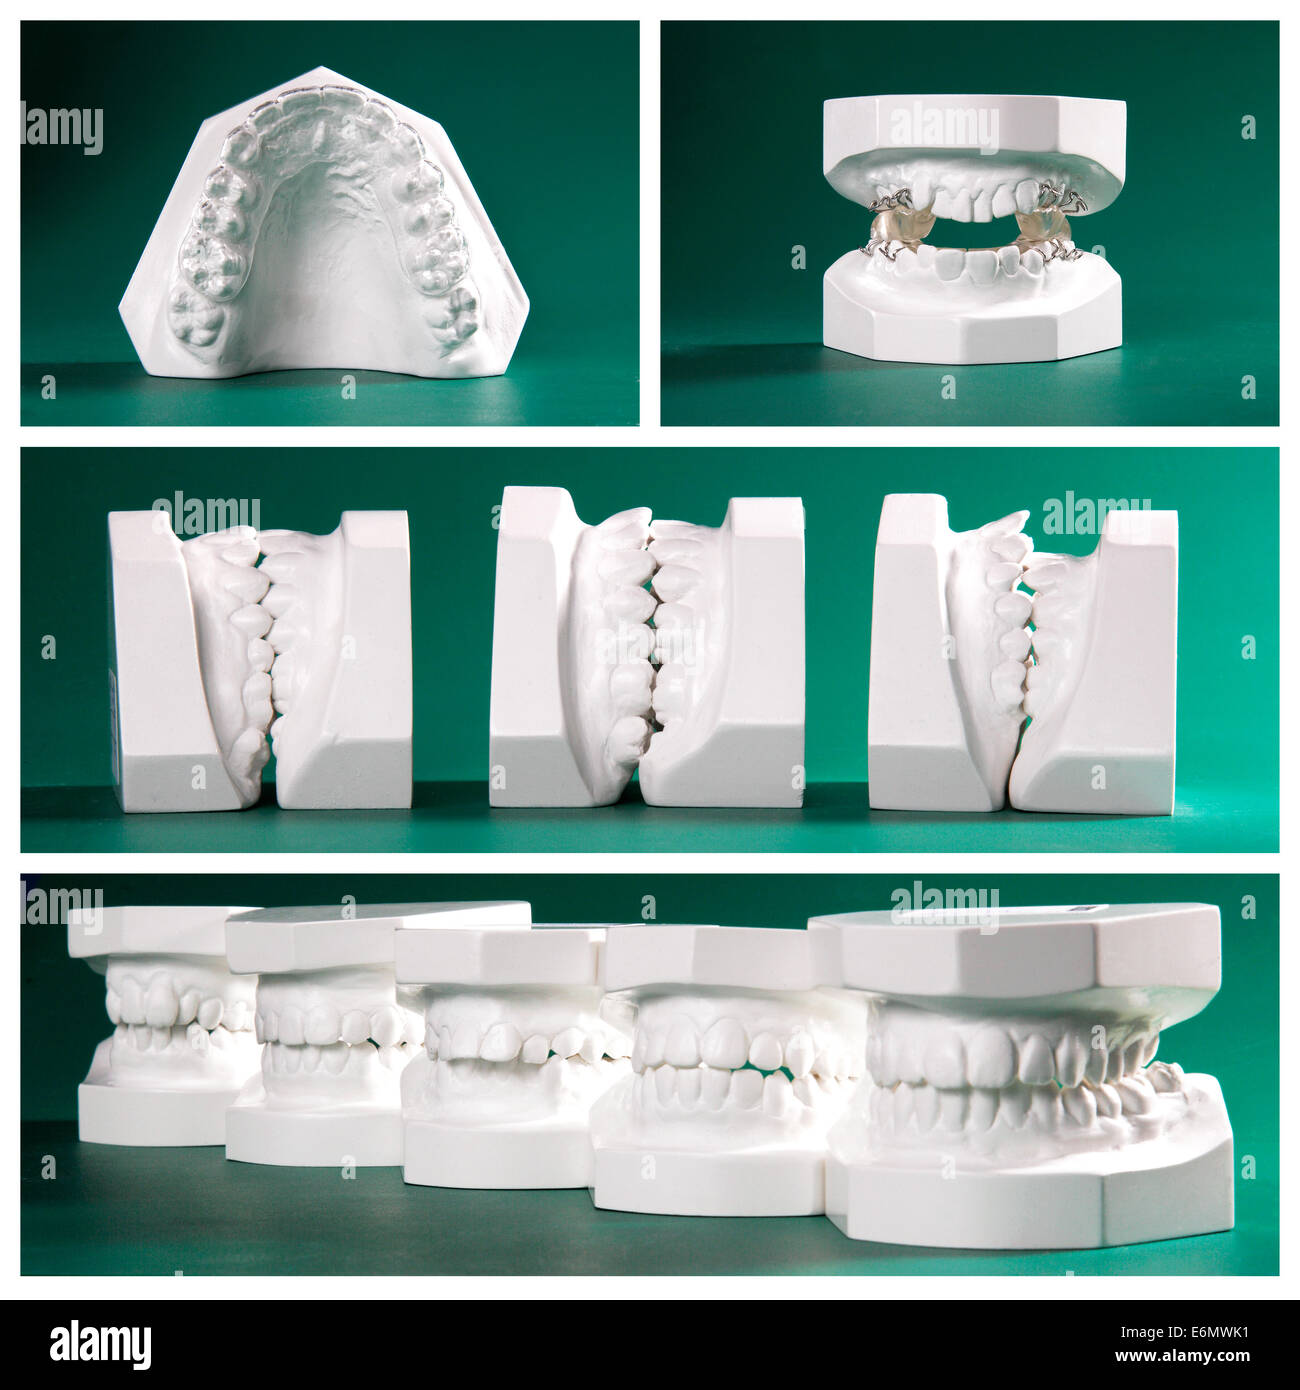 Compilation picture of dental study models on green background - Stock Image